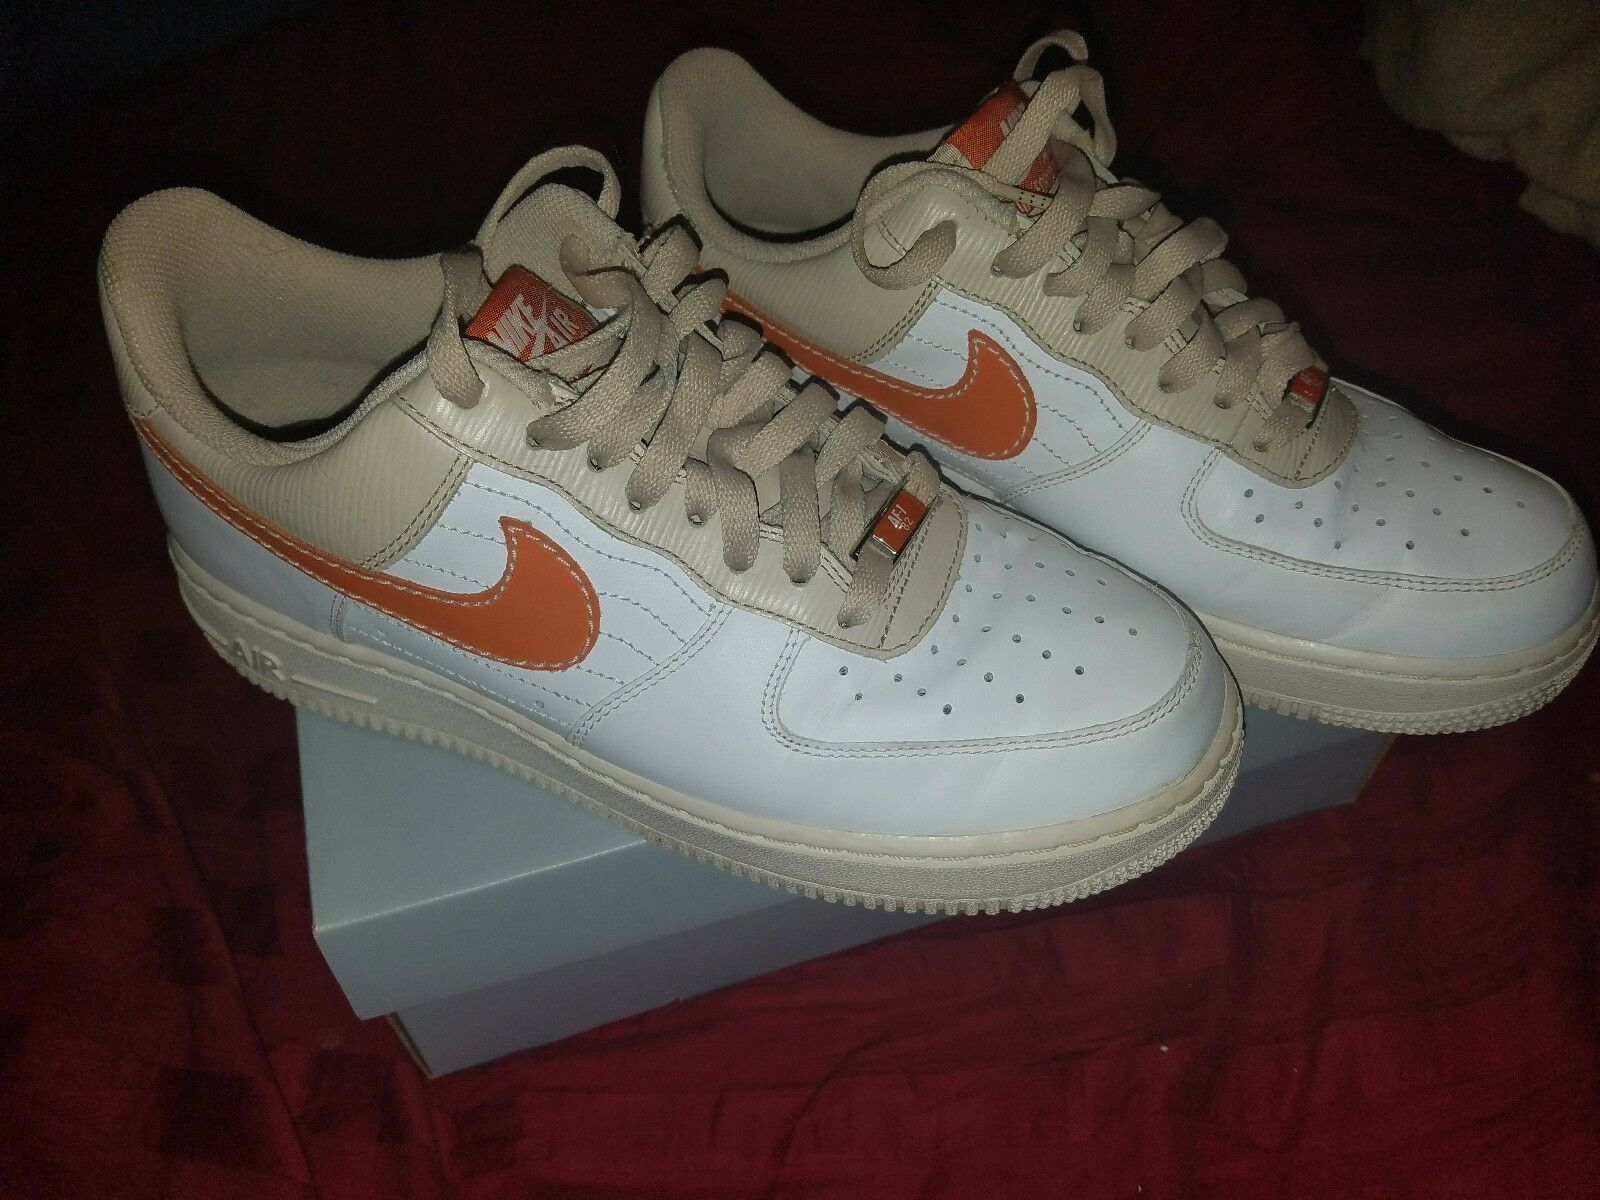 NIKE AIR FORCE 1 '07 LOW MEN'S SNEAKERS WHITE ORANGE TAN 315122-111 SHOES W BOX